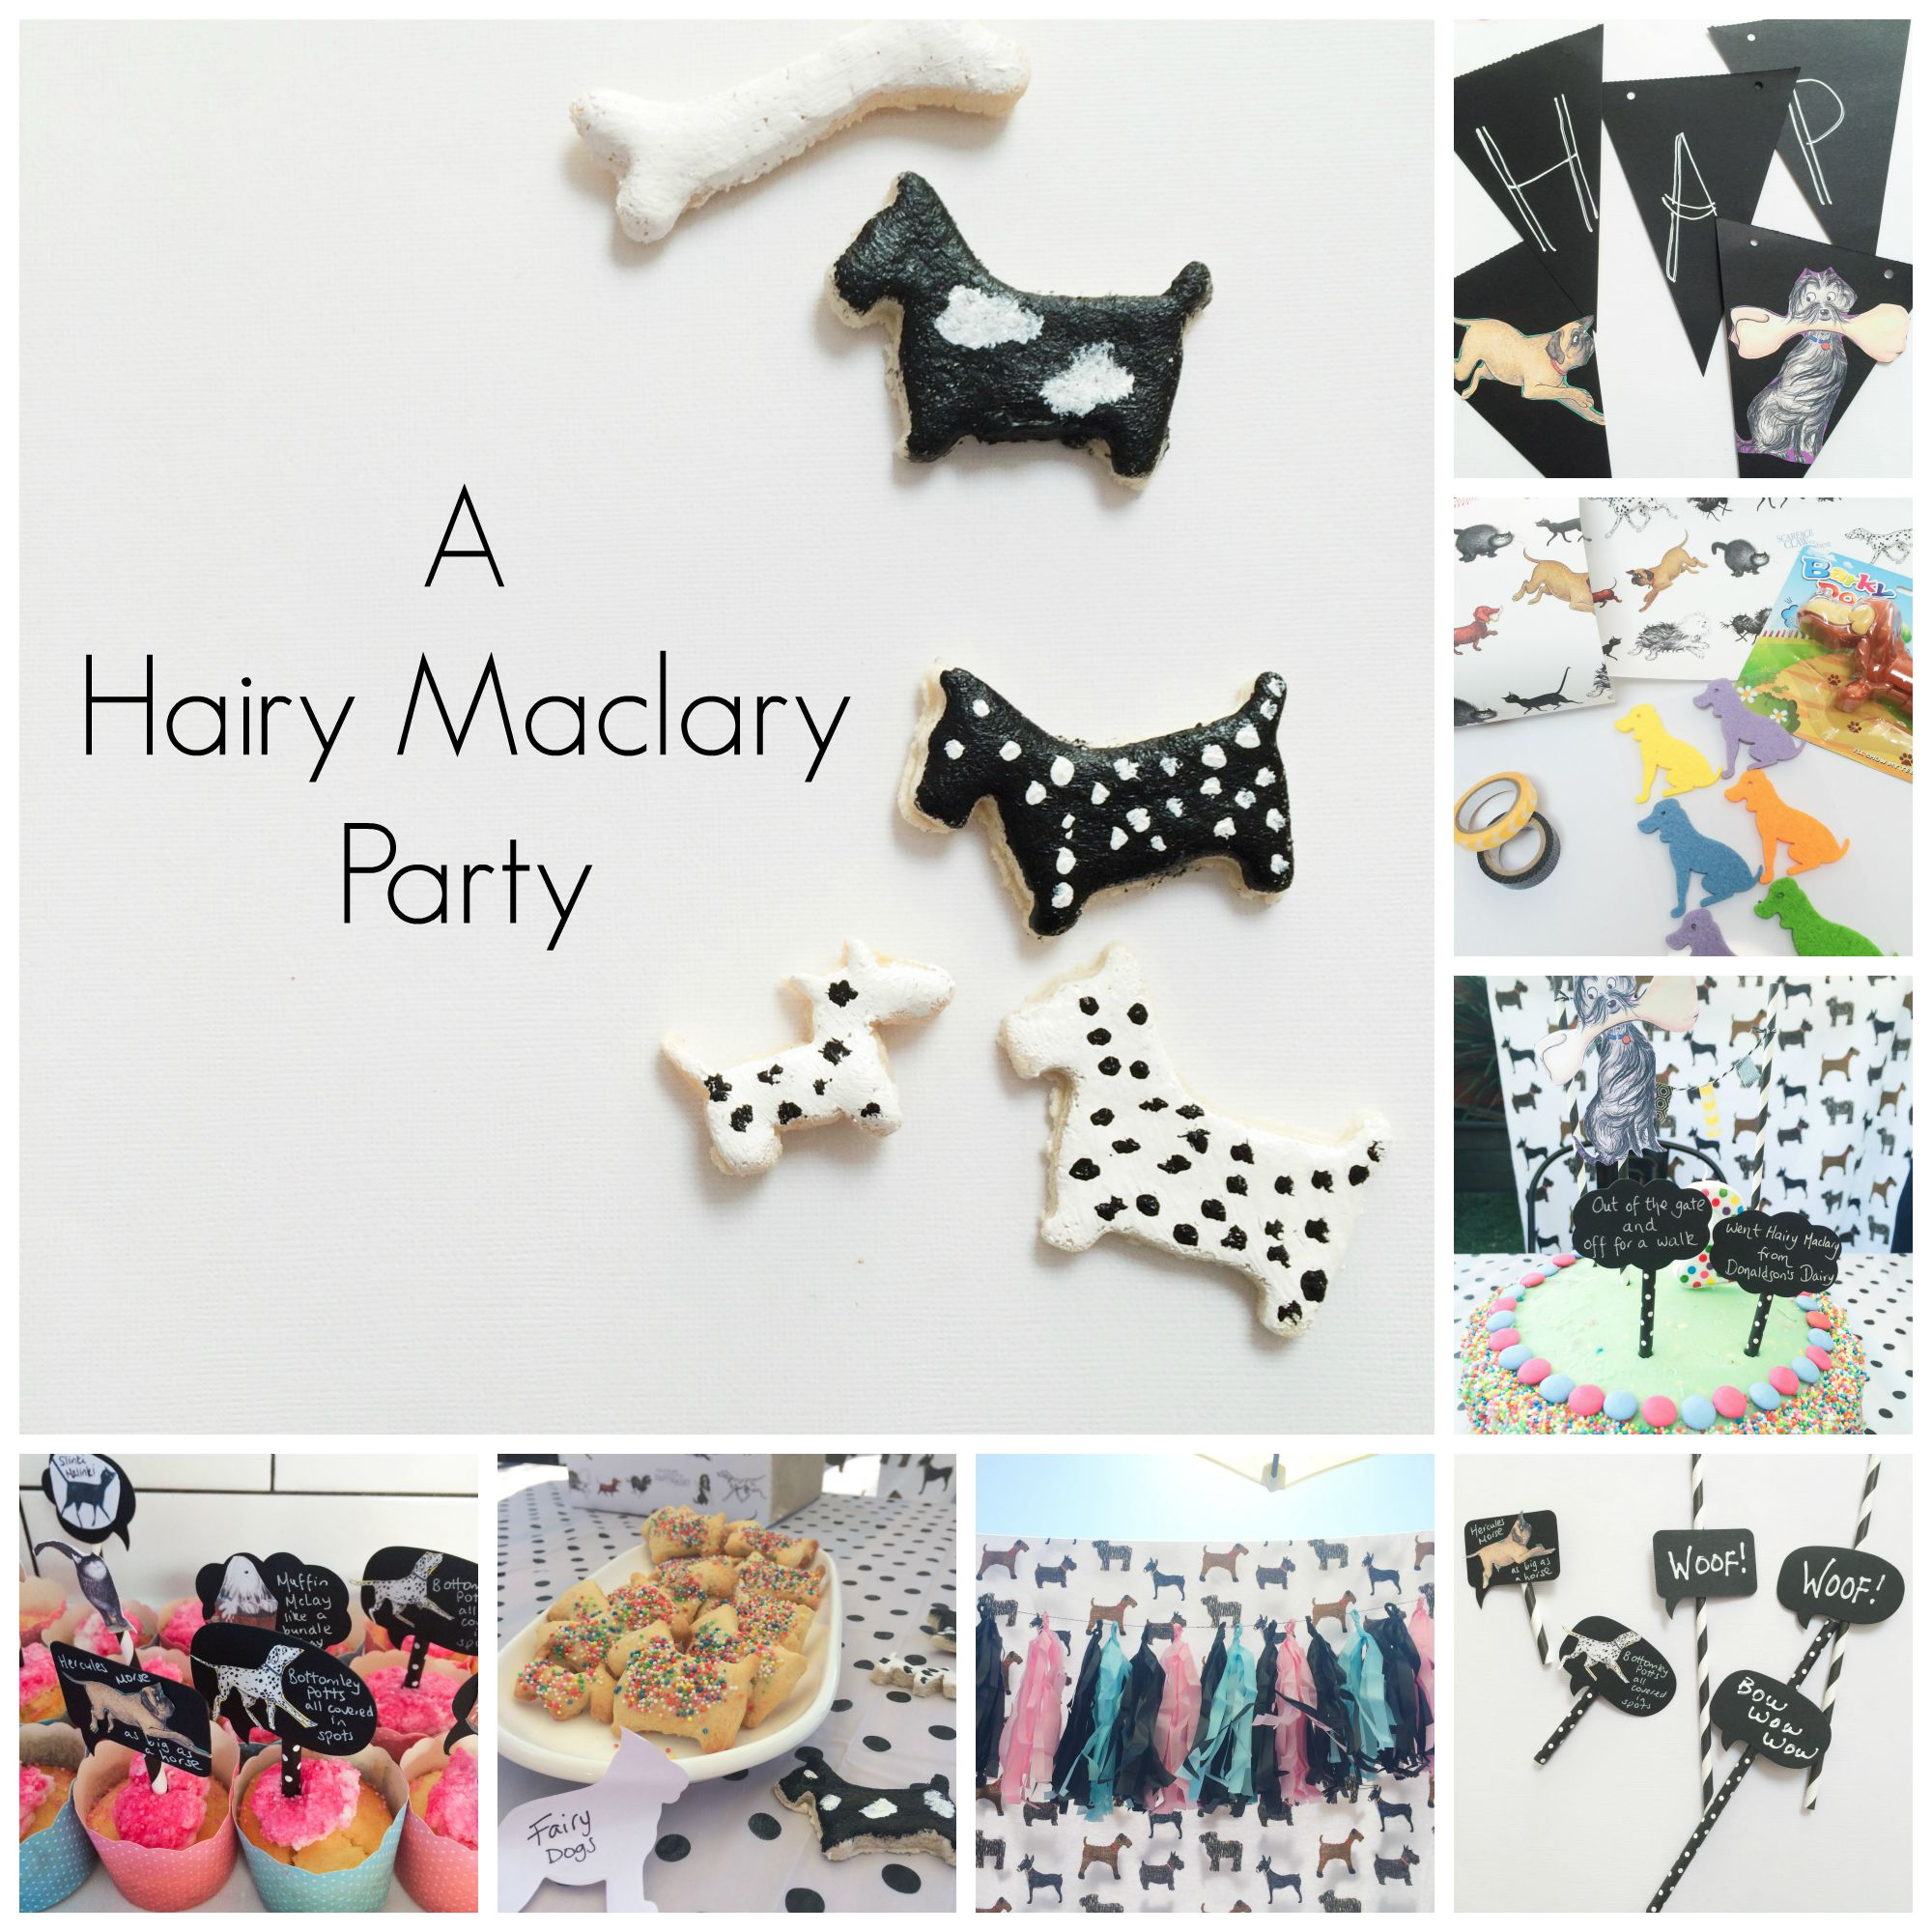 Hairy Maclary Party